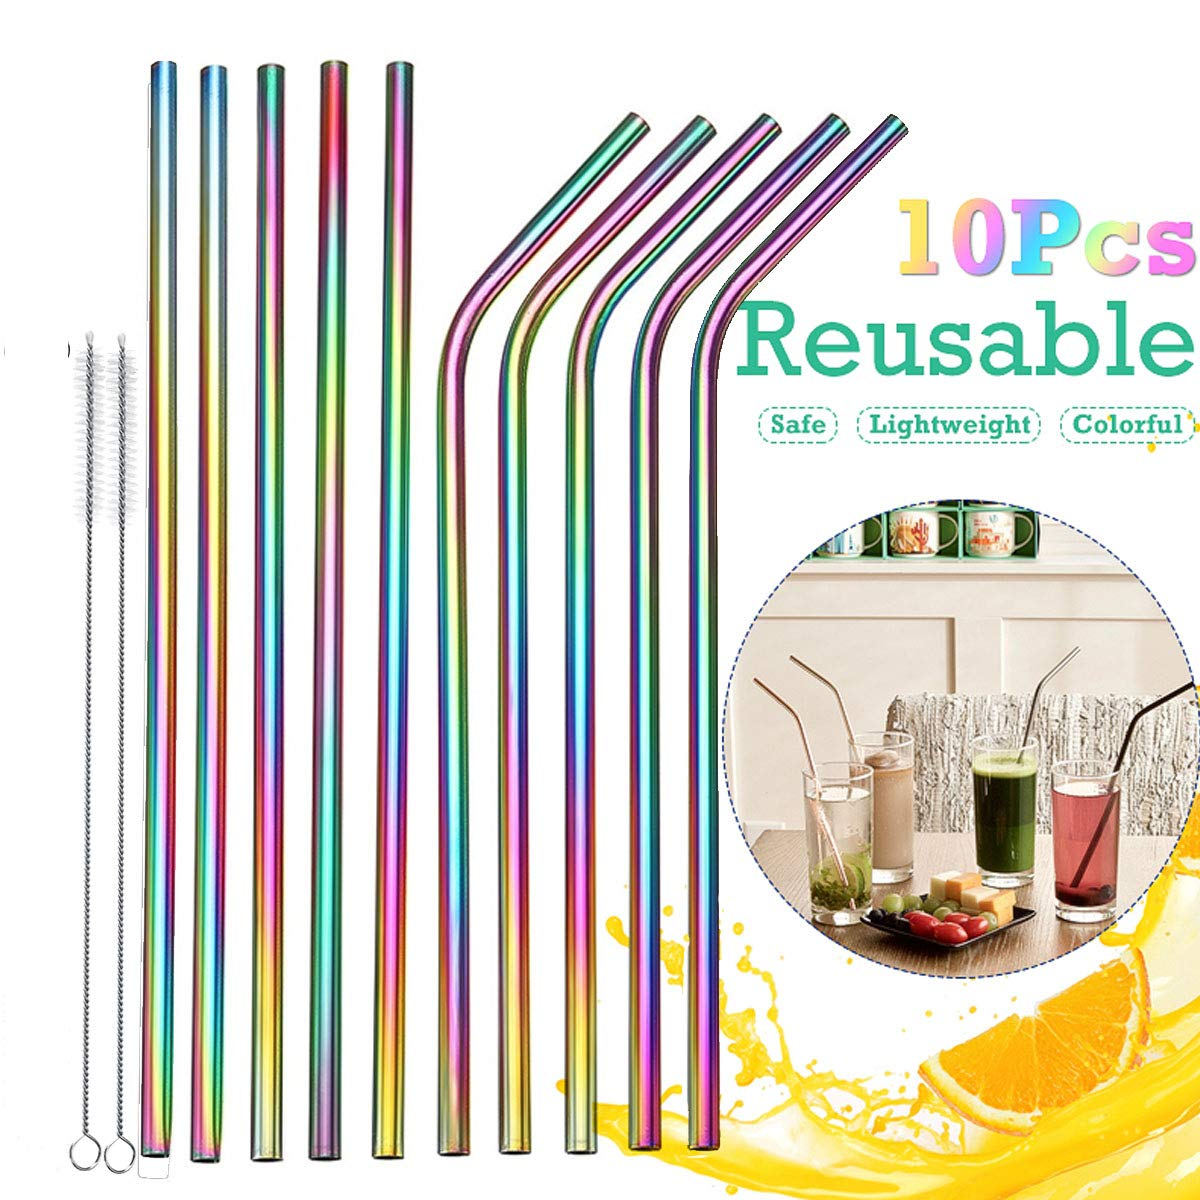 Multicolor Stainless Steel Straws, KeepTpeeK 10 Pcs Drinking Reusable Environment Friendly Straws with Ultra Long Cleaning Brush for Tumblers Cold Beverage(5 Straight,5 Bent,2 Brushes)